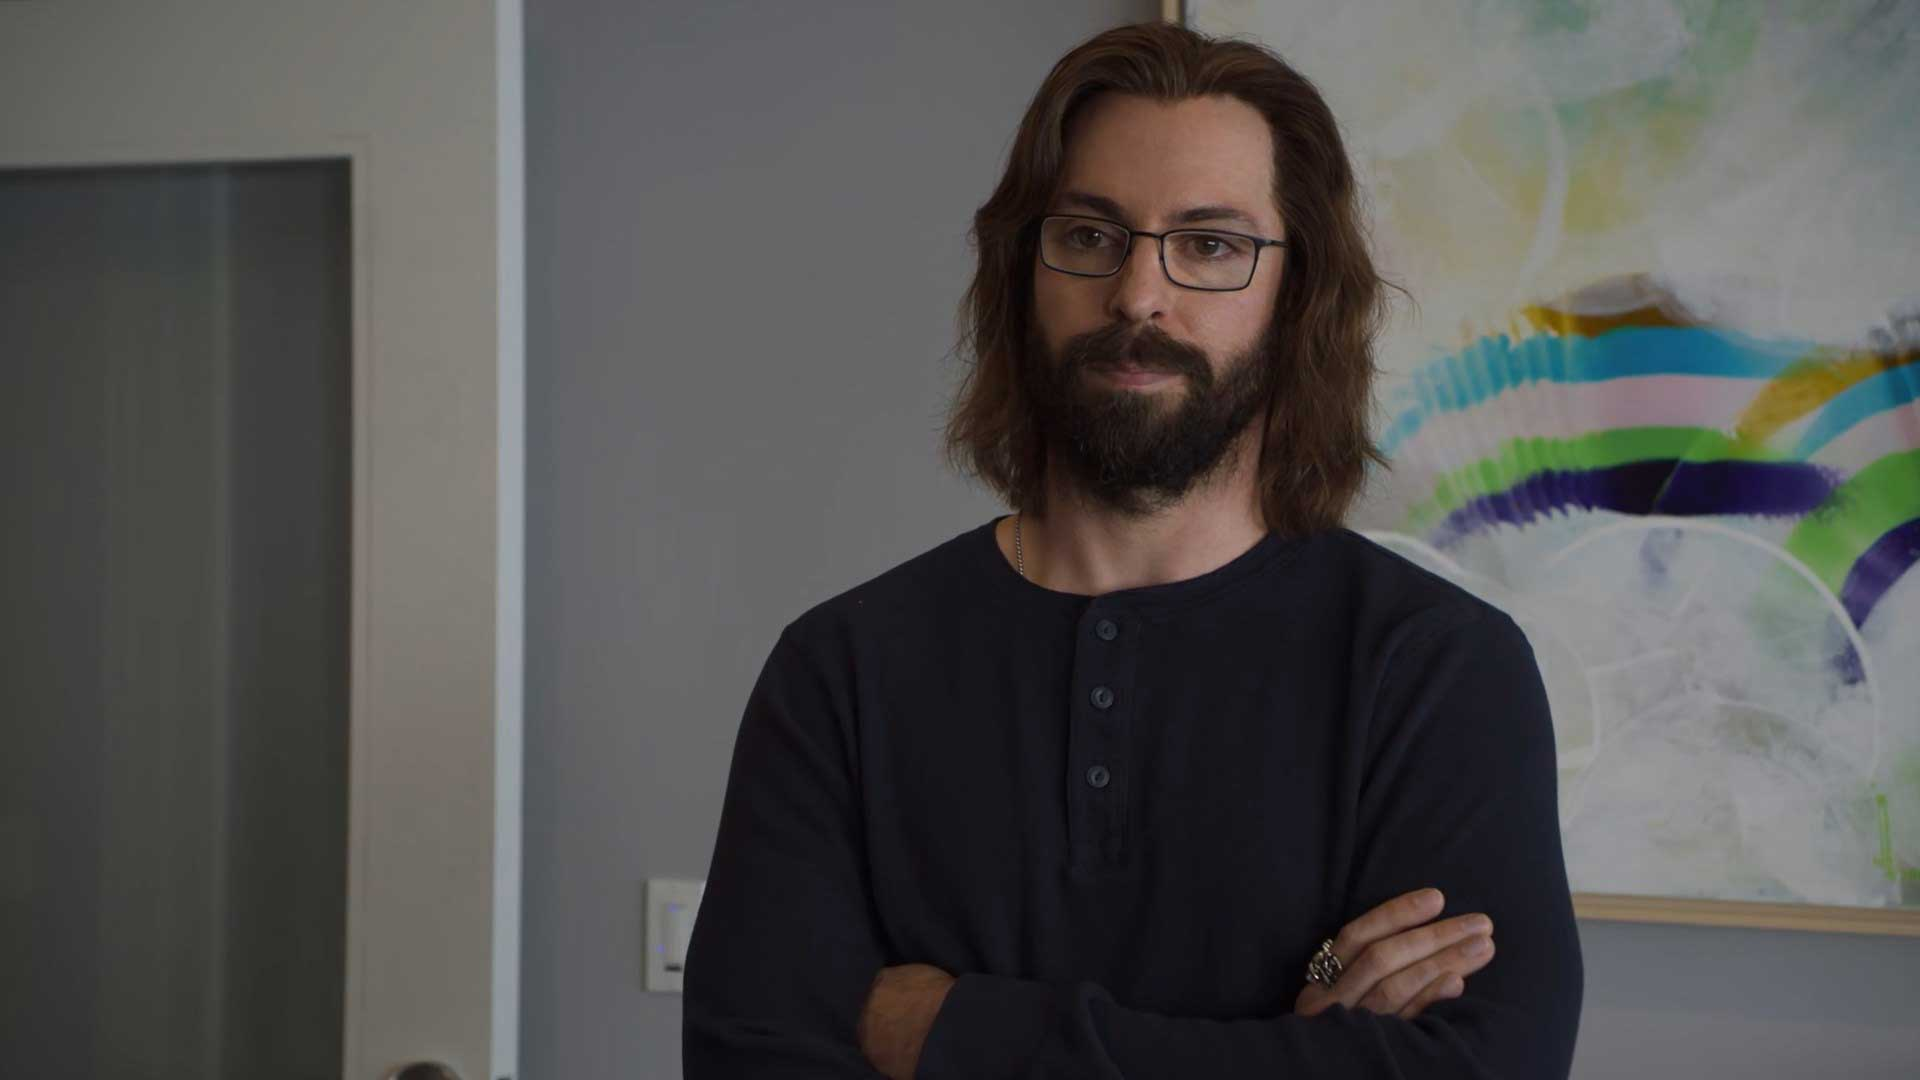 Silicon Valley S06E02 Gilfoyle HR